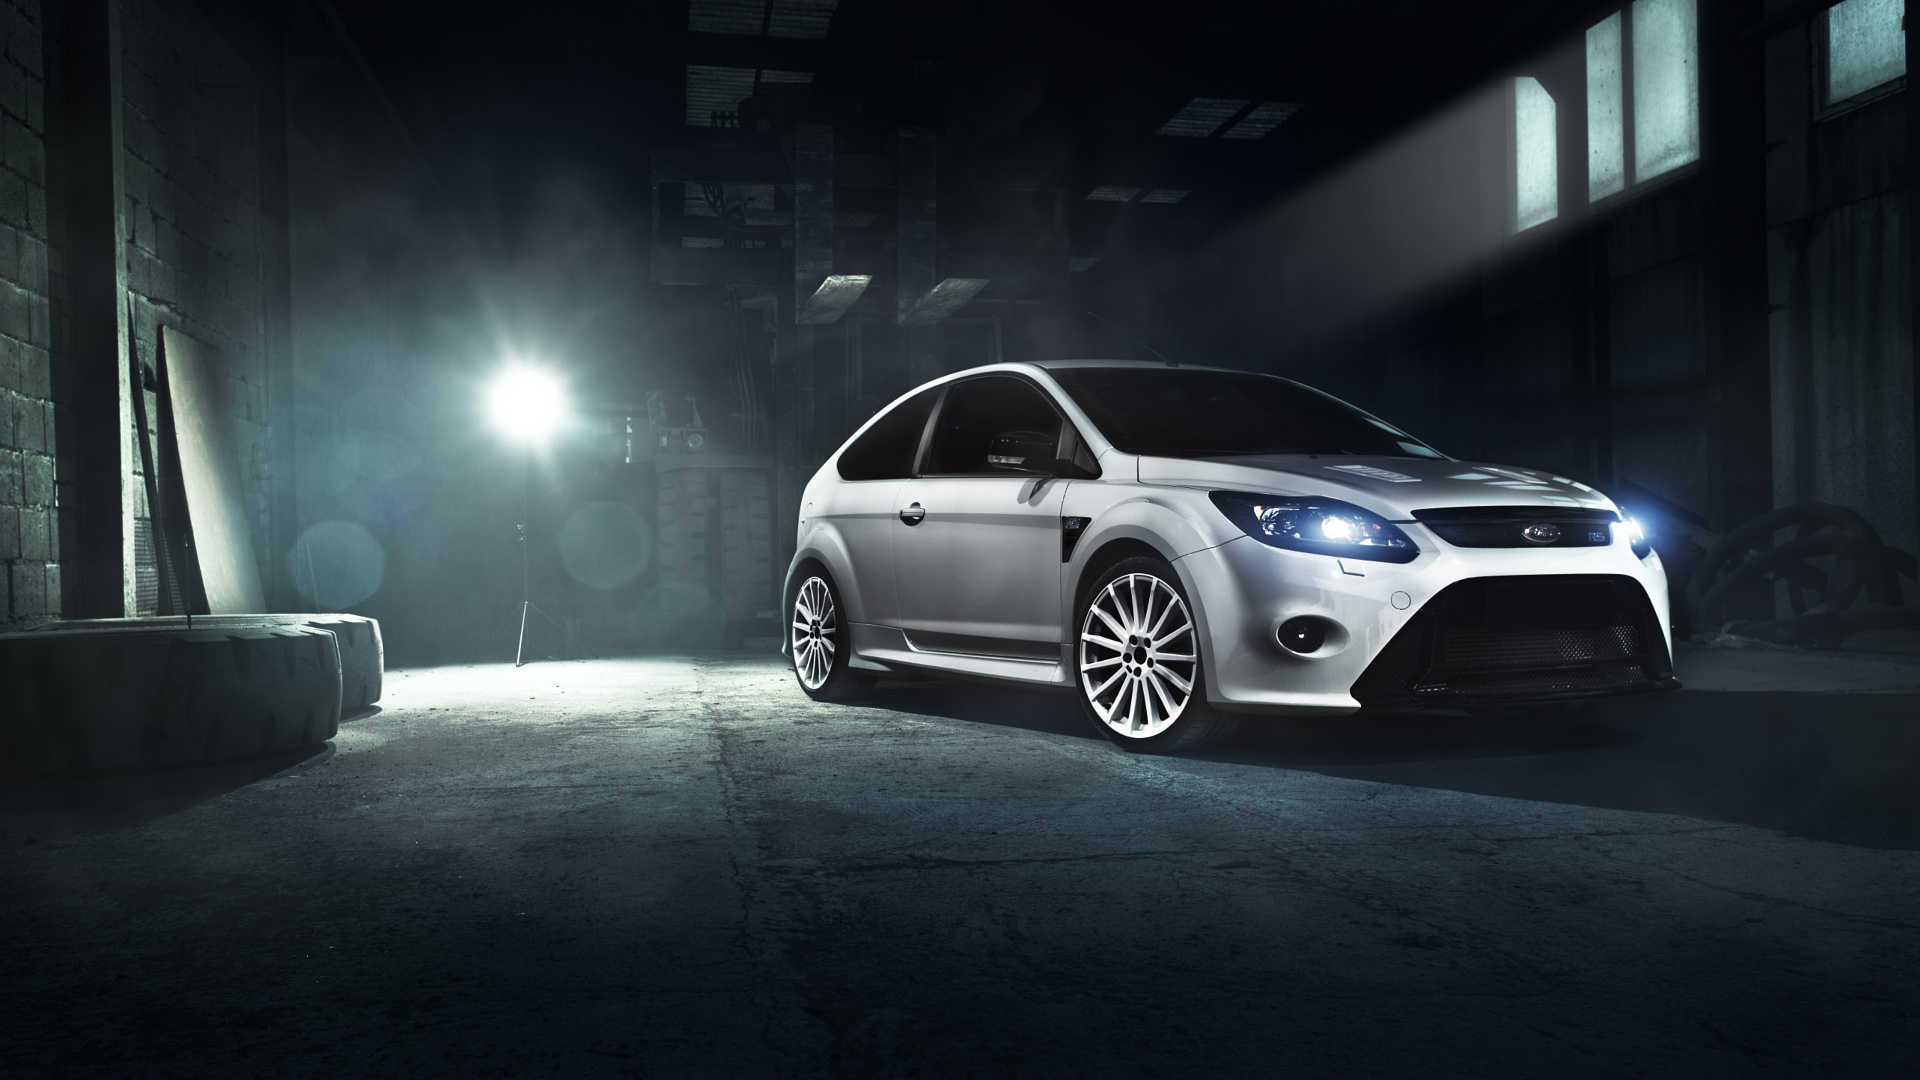 http://www.hdcarwallpapers.com/walls/ford_focus_rs_white-HD.jpg